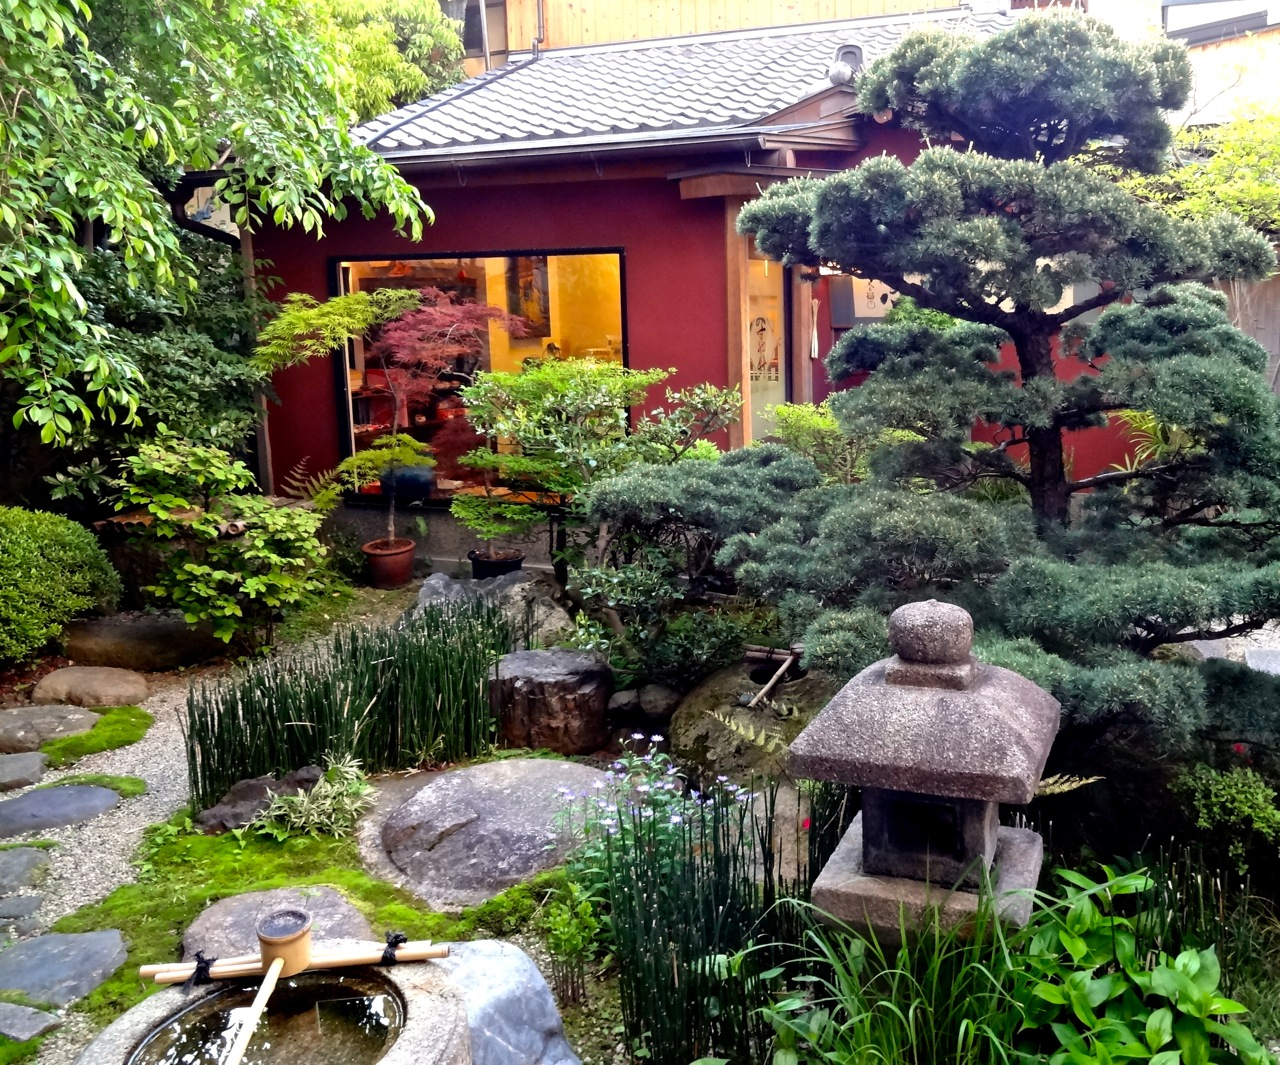 Meandering Paths, Stone Lantern, Water Basin, Koi Pond, Rocks, Flowers And